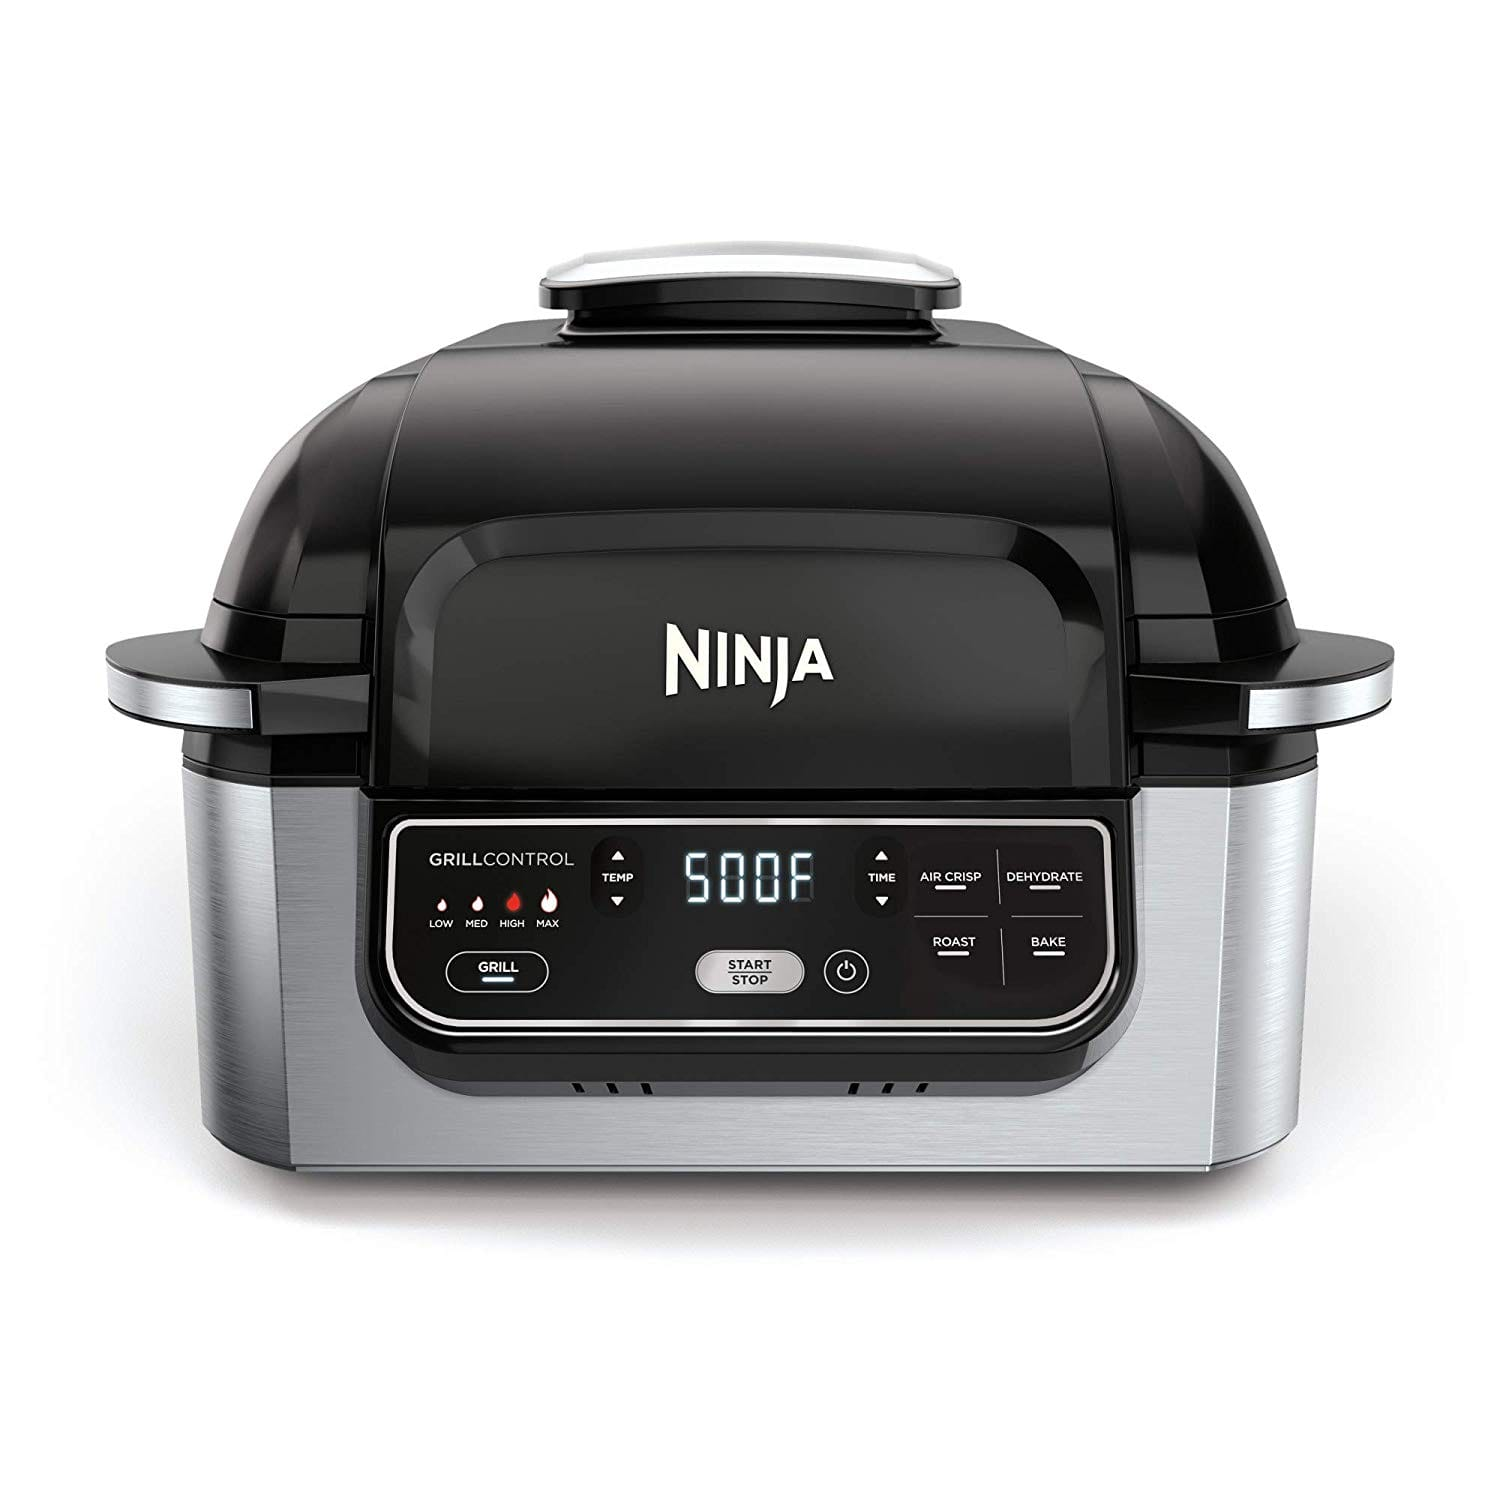 Ninja Foodi 5-in-1 4-qt. Air Fryer, Roast, Bake, Dehydrate Indoor Electric Grill (AG301) for $159.99 at Amazon